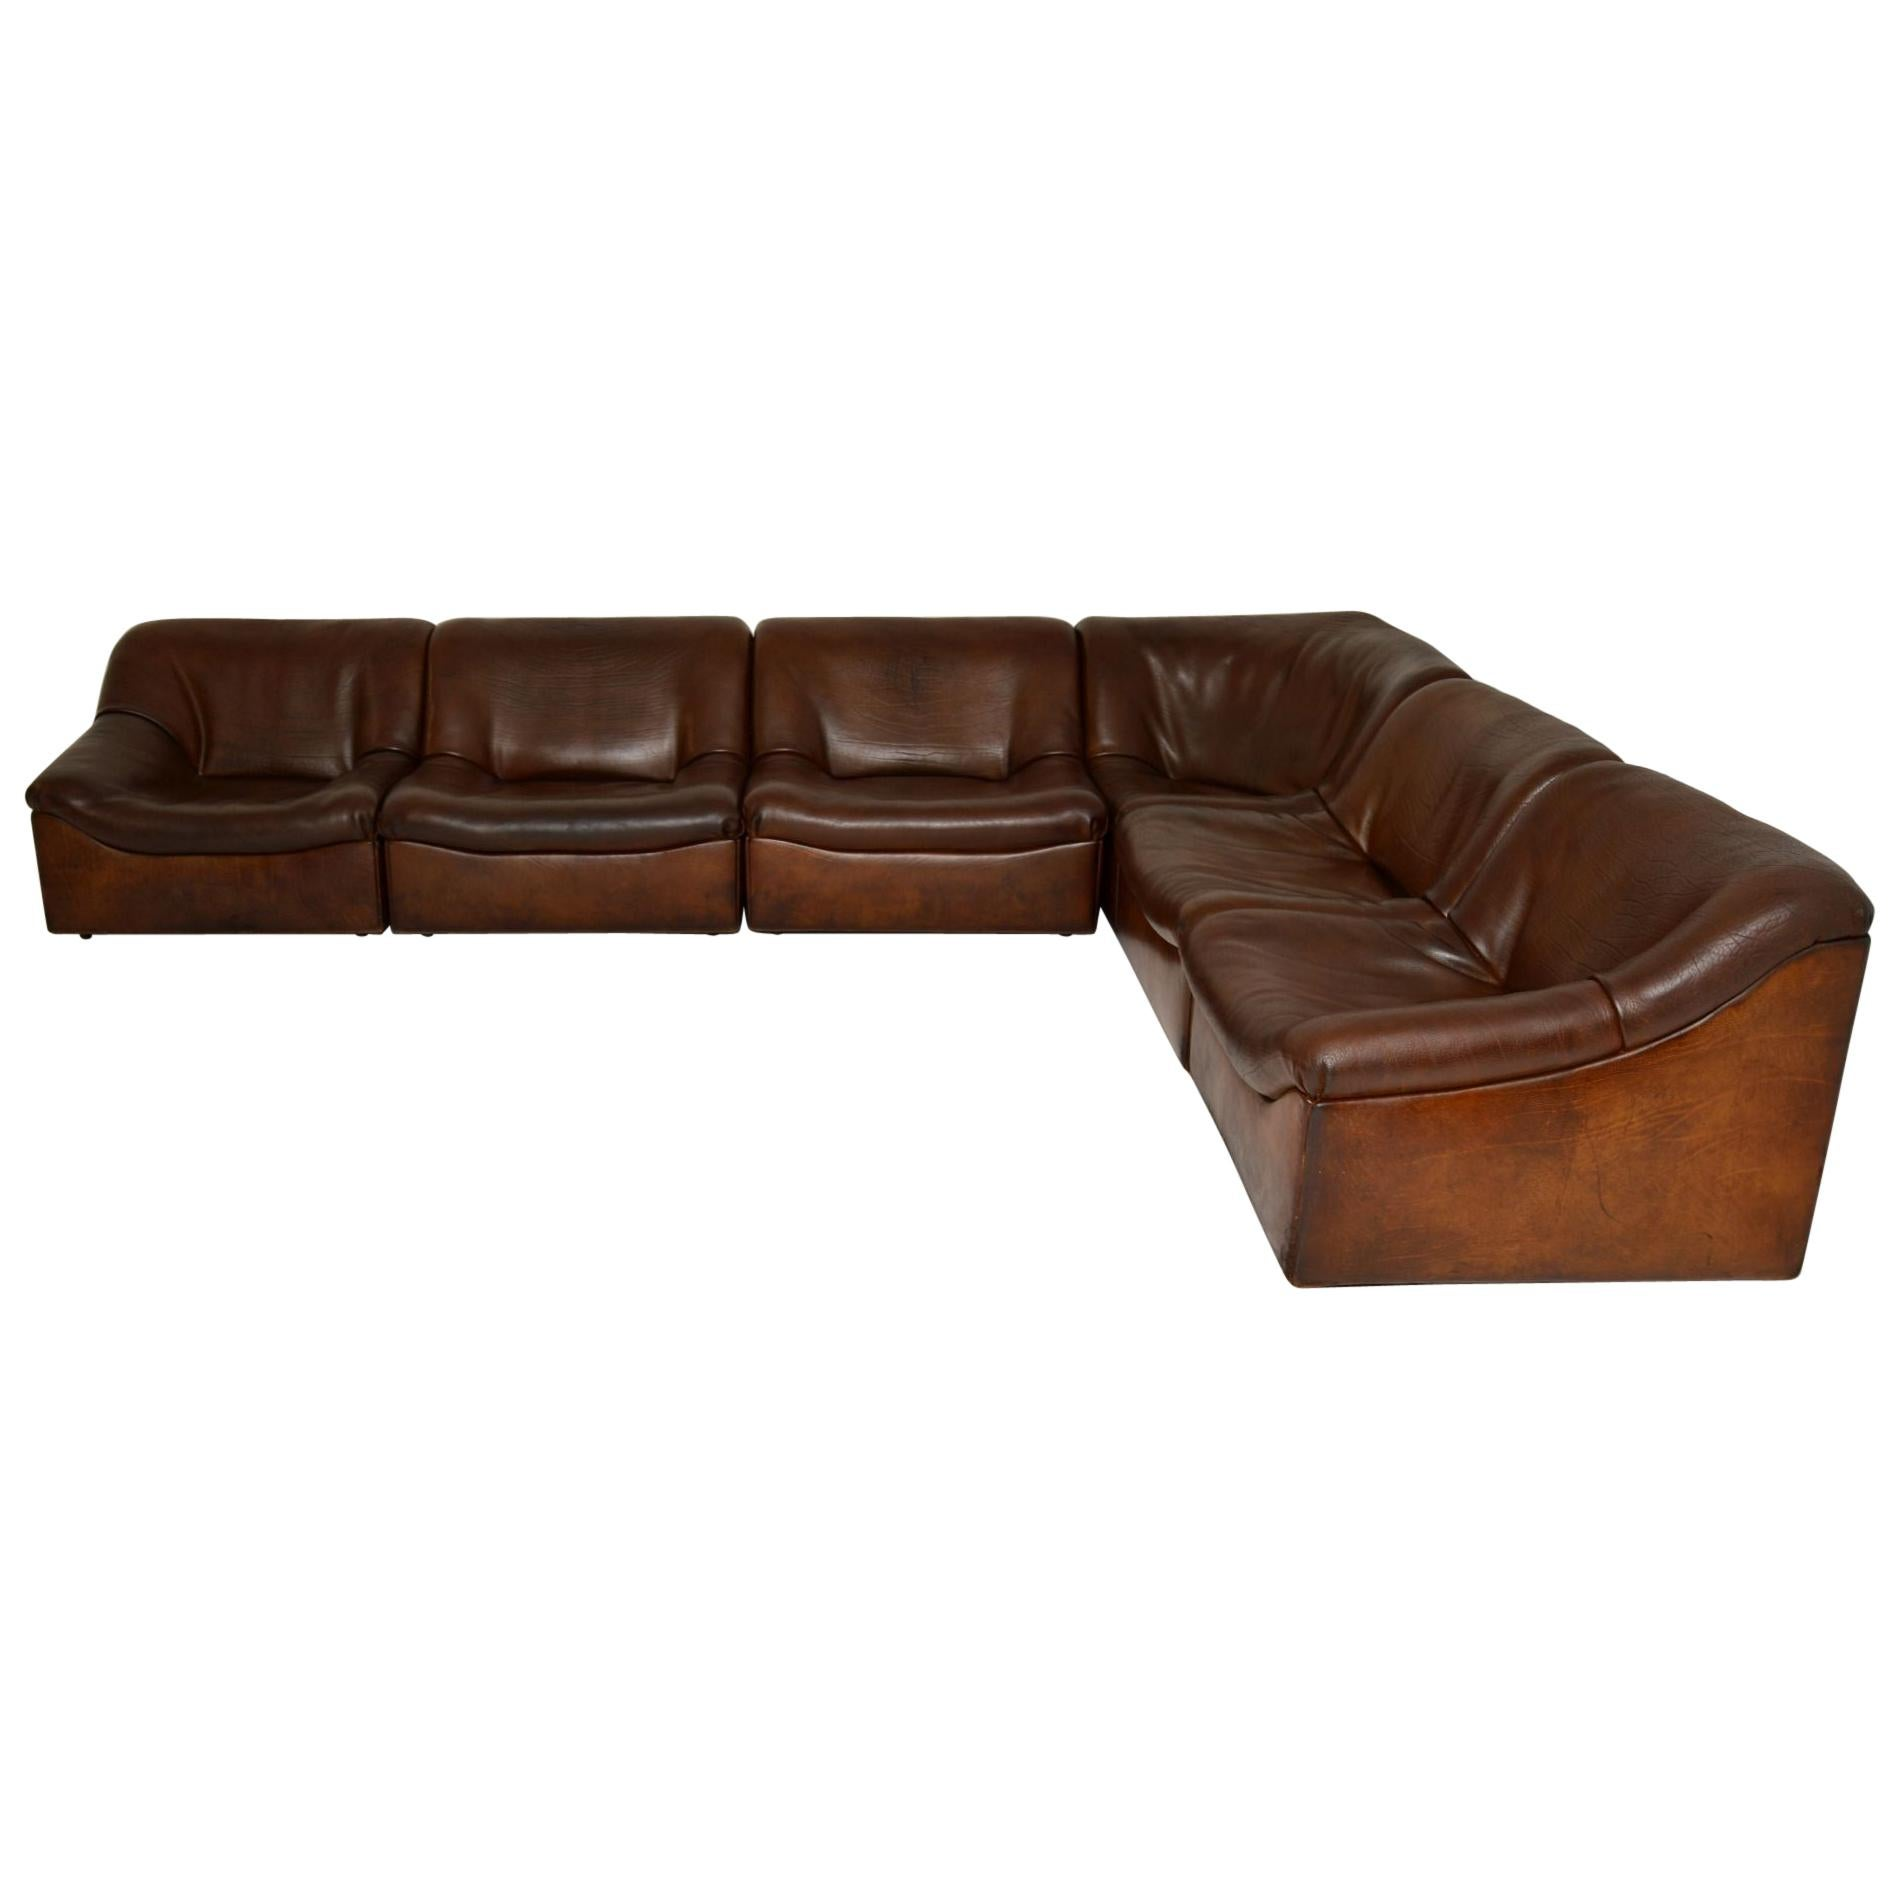 De Sede DS46 Vintage Leather Sectional Corner Sofa